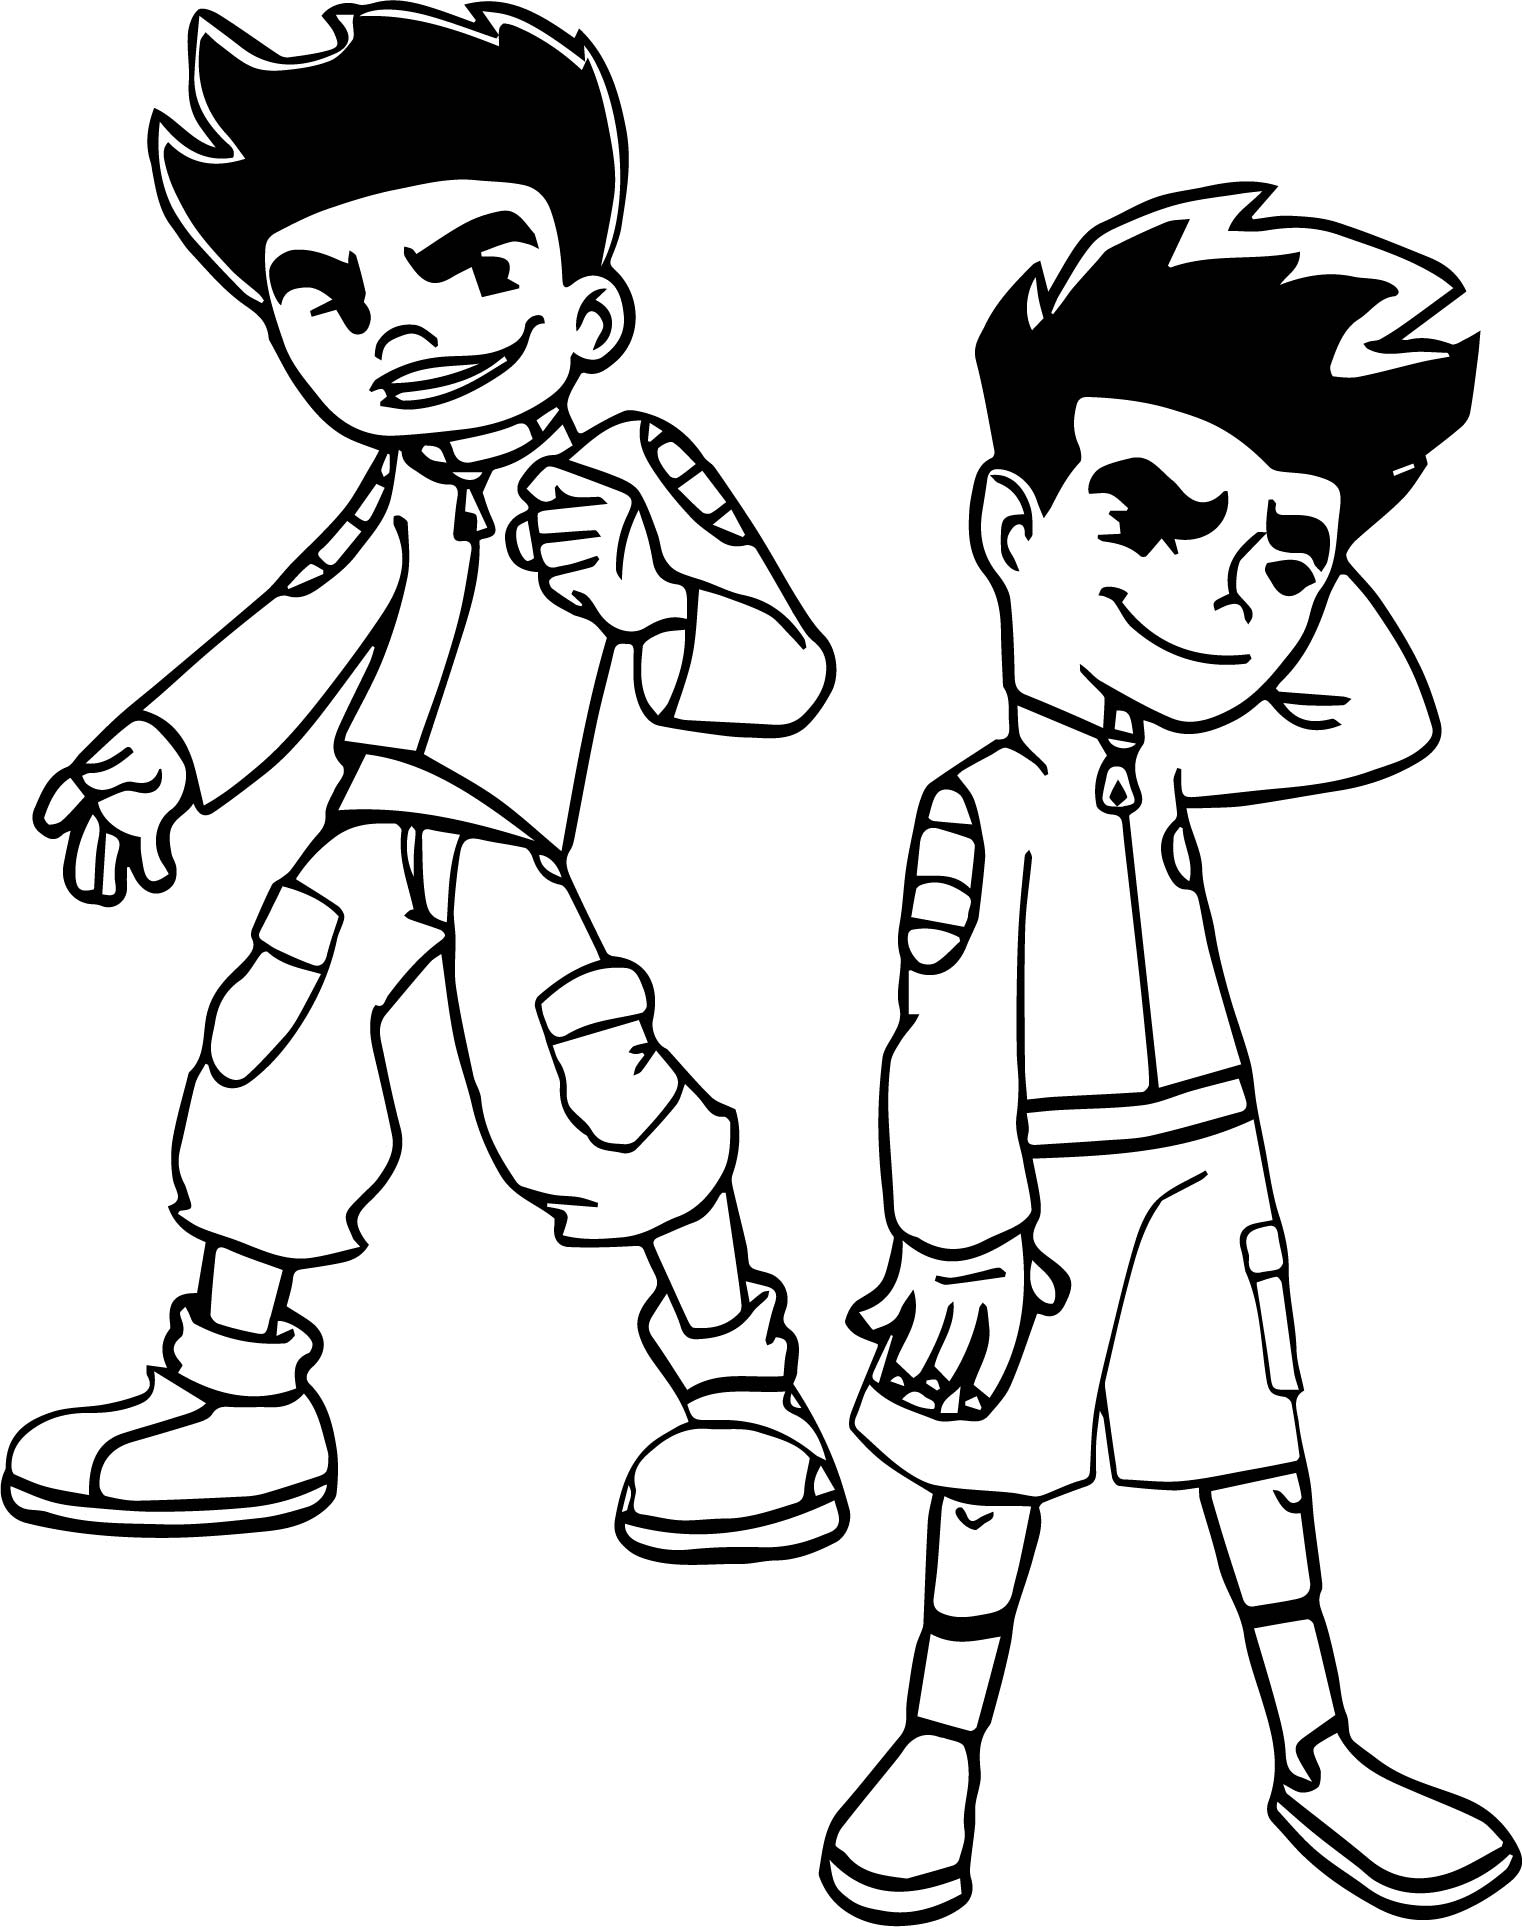 American Dragon Jake Long Poses Coloring Page